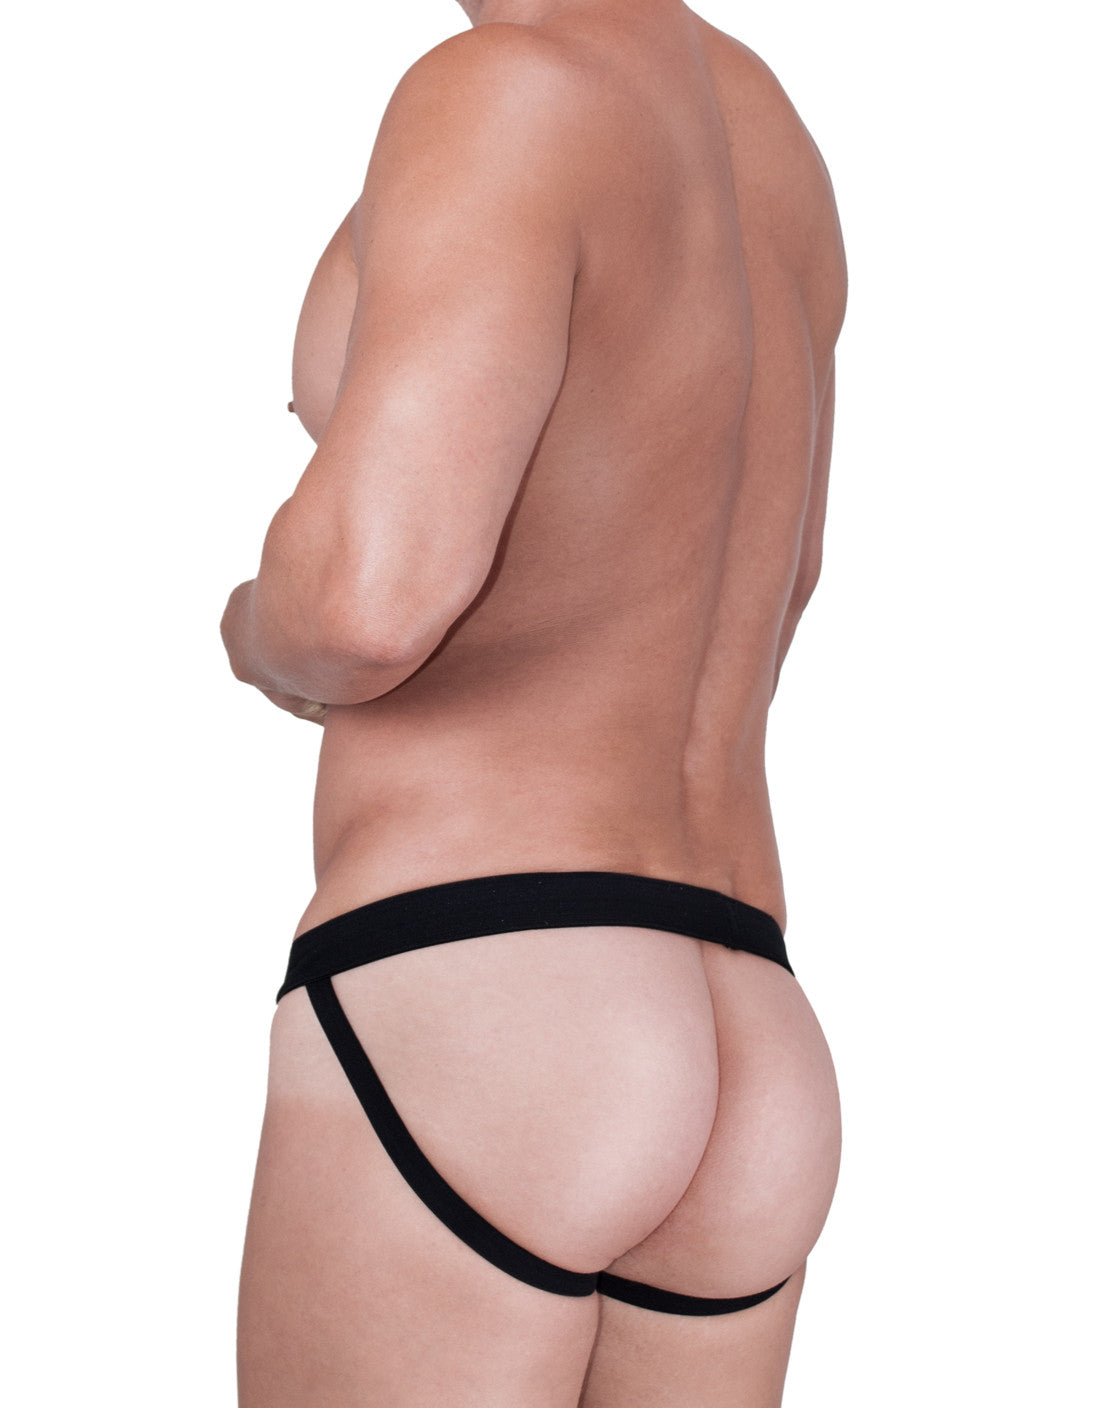 WildmanT Raw Mesh Jockstrap Contrast Red